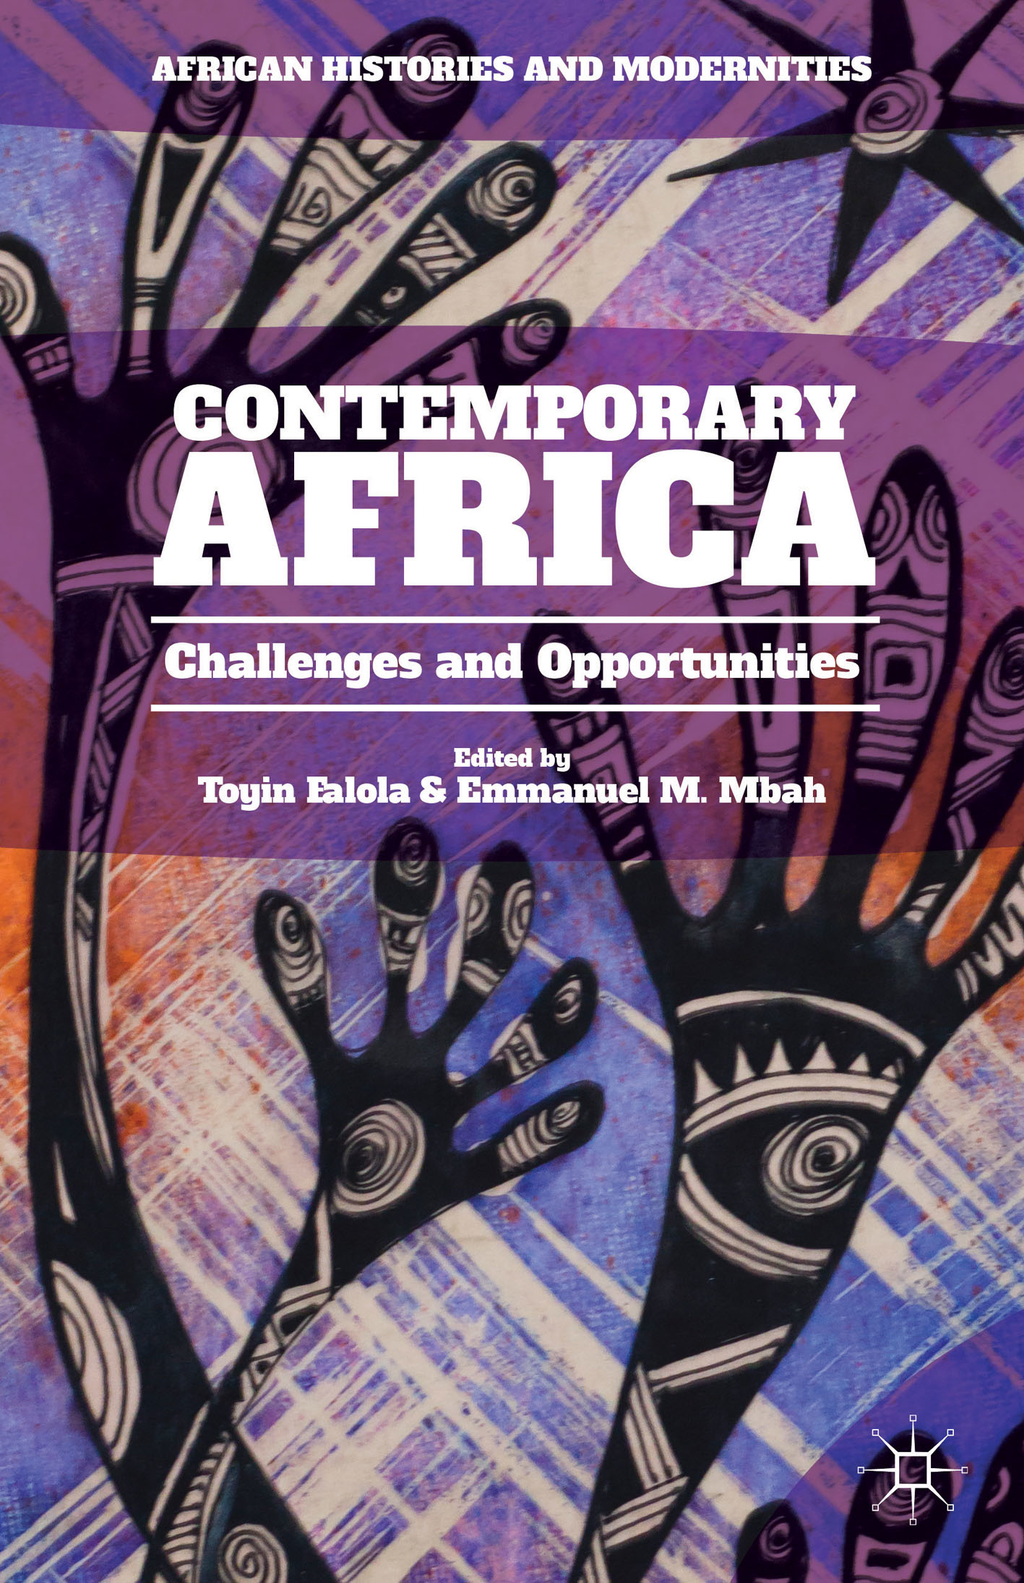 Contemporary Africa Challenges and Opportunities